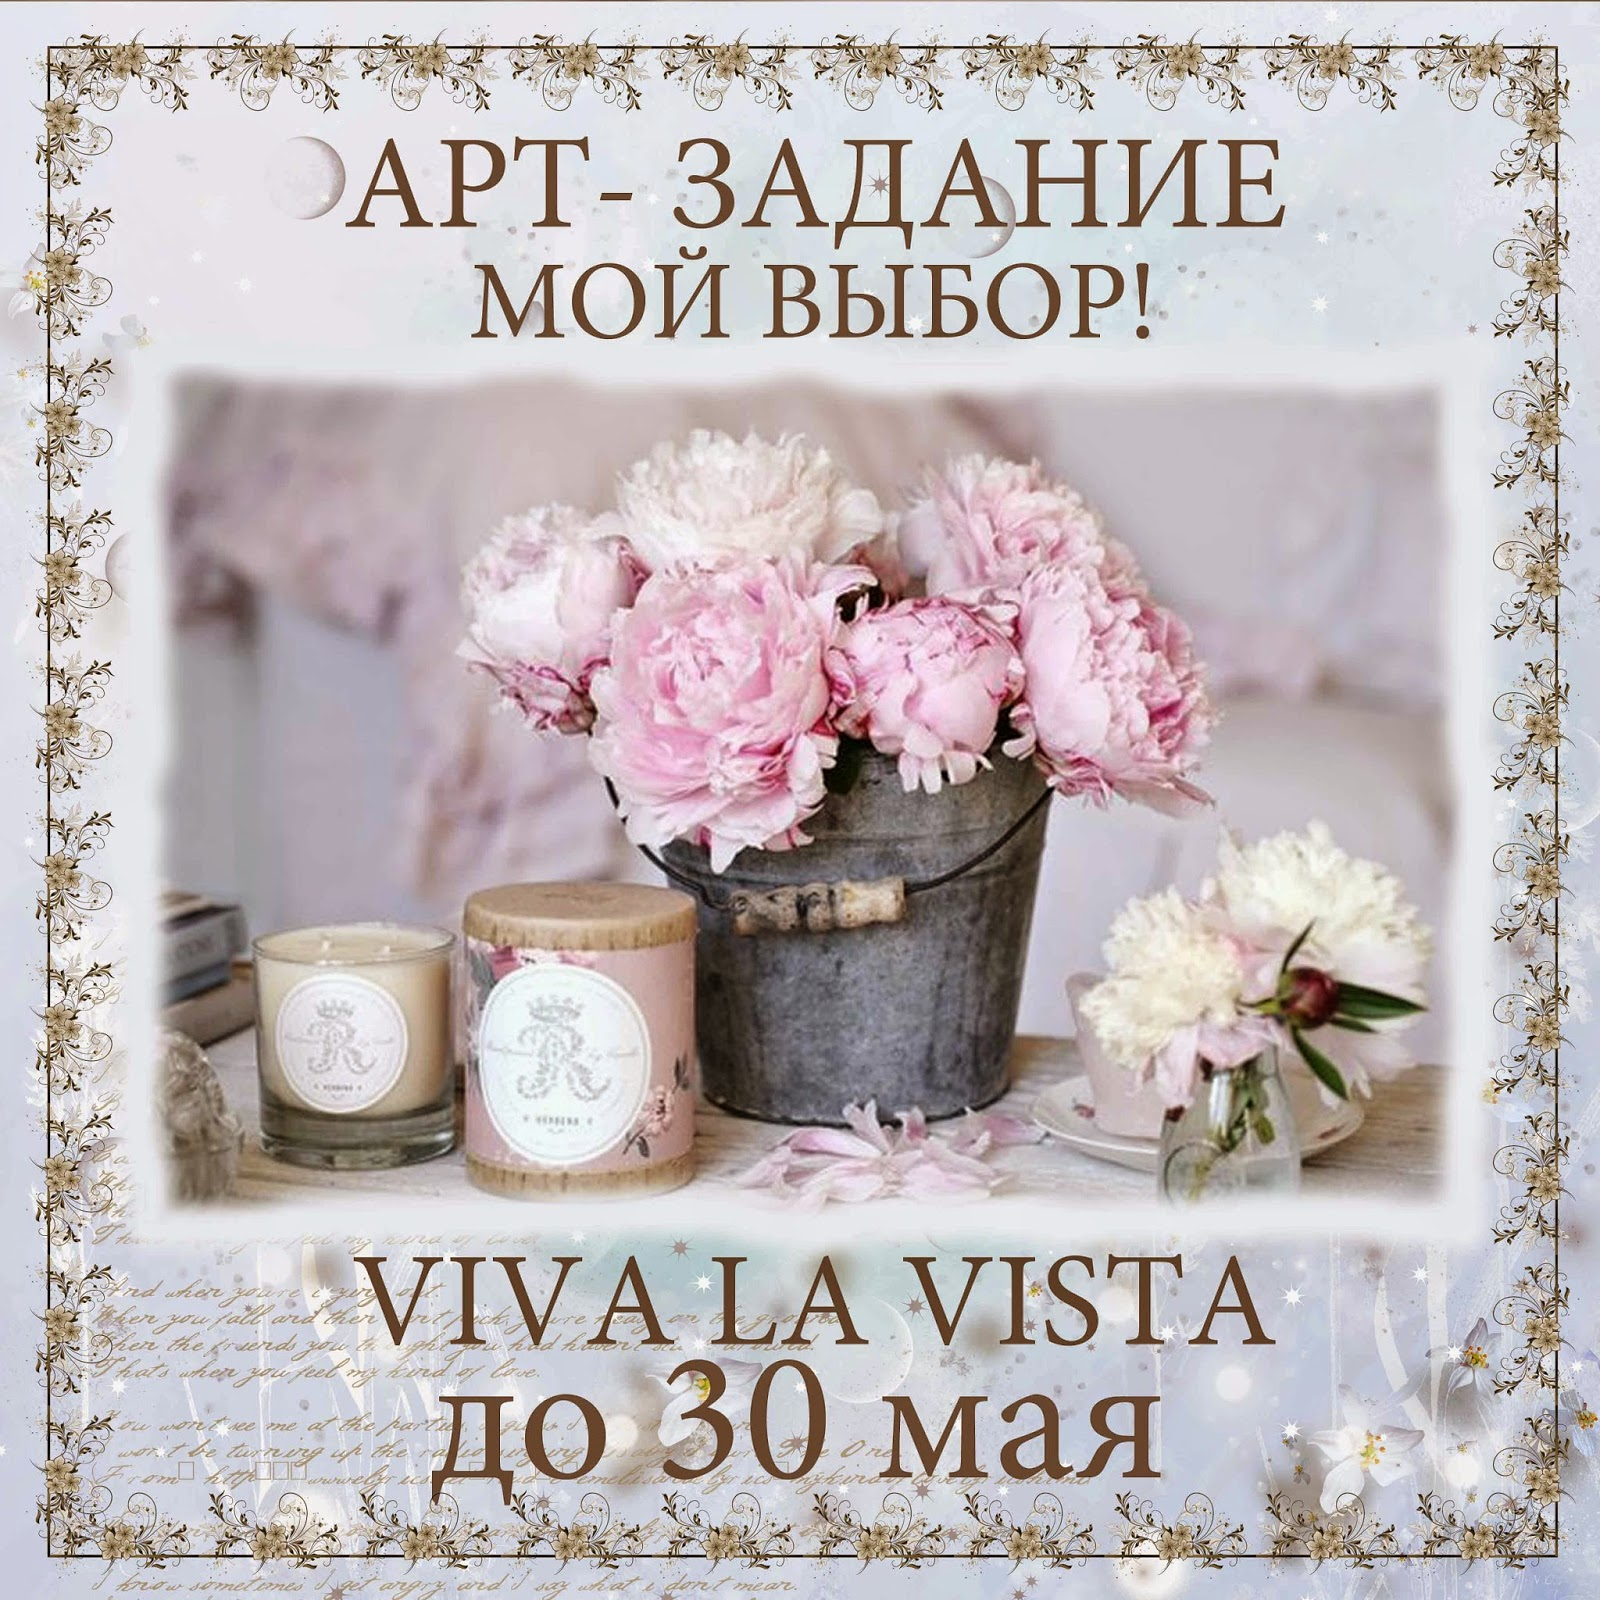 http://vlvista.blogspot.ru/2015/04/blog-post_16.html?showComment=1430164324993#c8369792986297821500